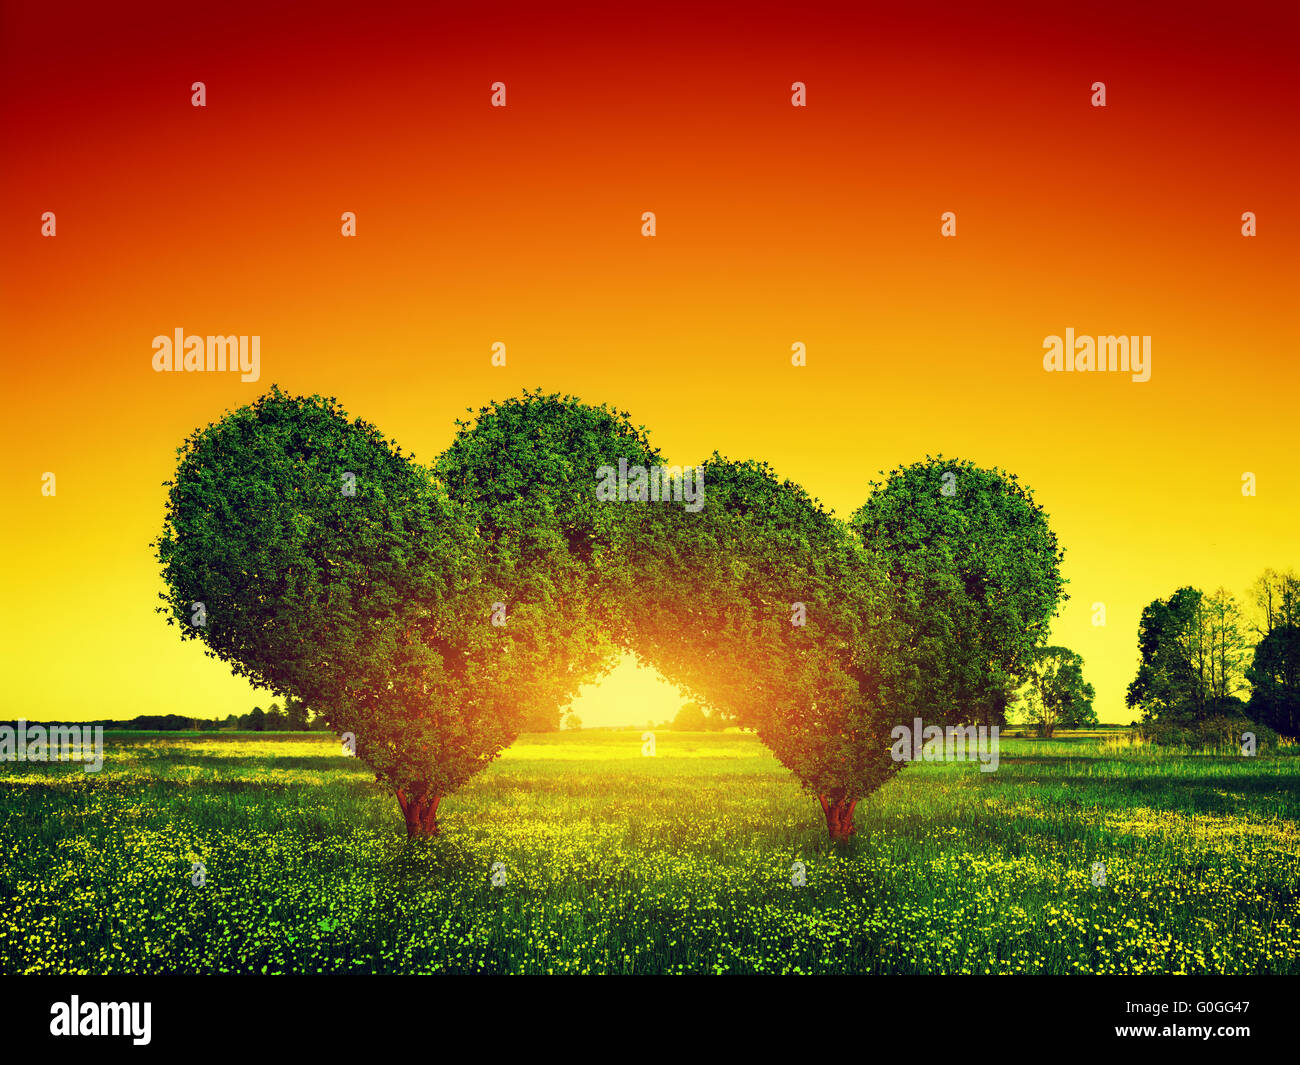 grass field sunset. Heart Shape Trees Couple On Green Grass Field Landscape At Sunset. Love Symbol Sunset